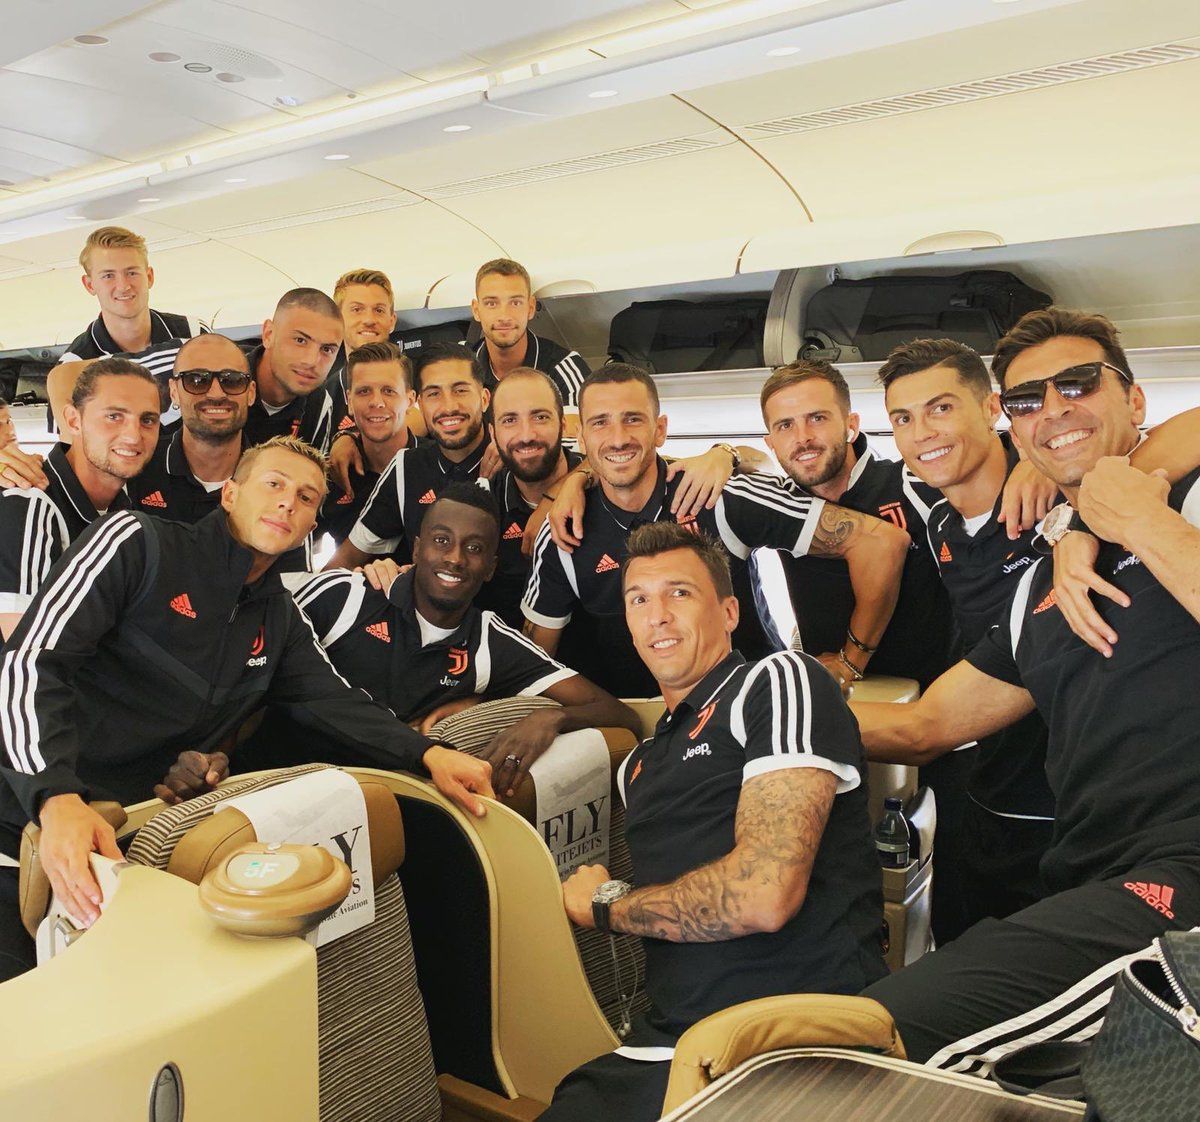 Juventus airlines. Ready for take off👨🏾✈️✈️ #FinoAllaFine